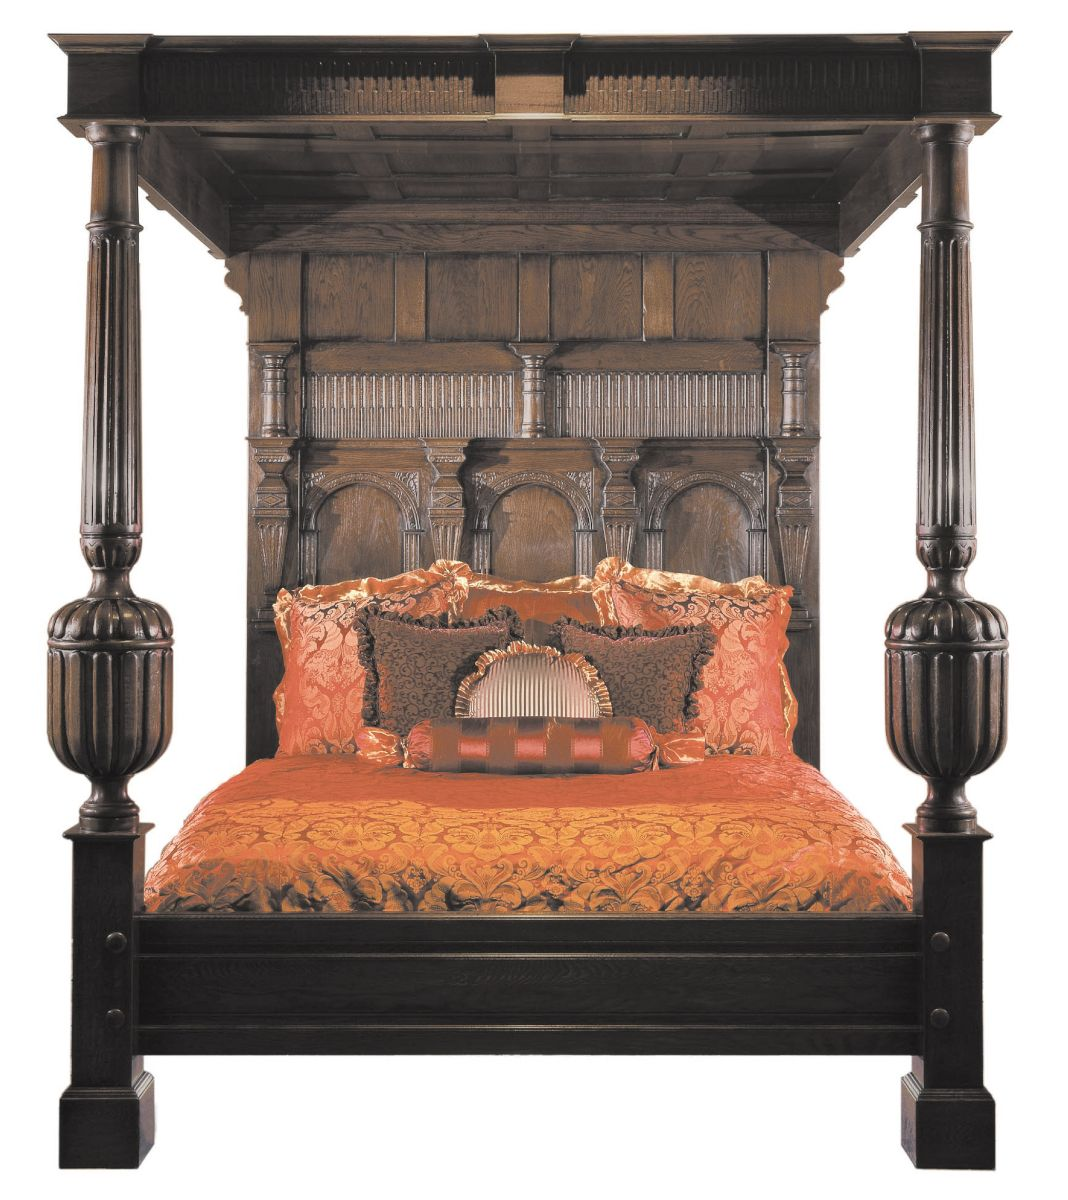 Tudor Four Poster Bed